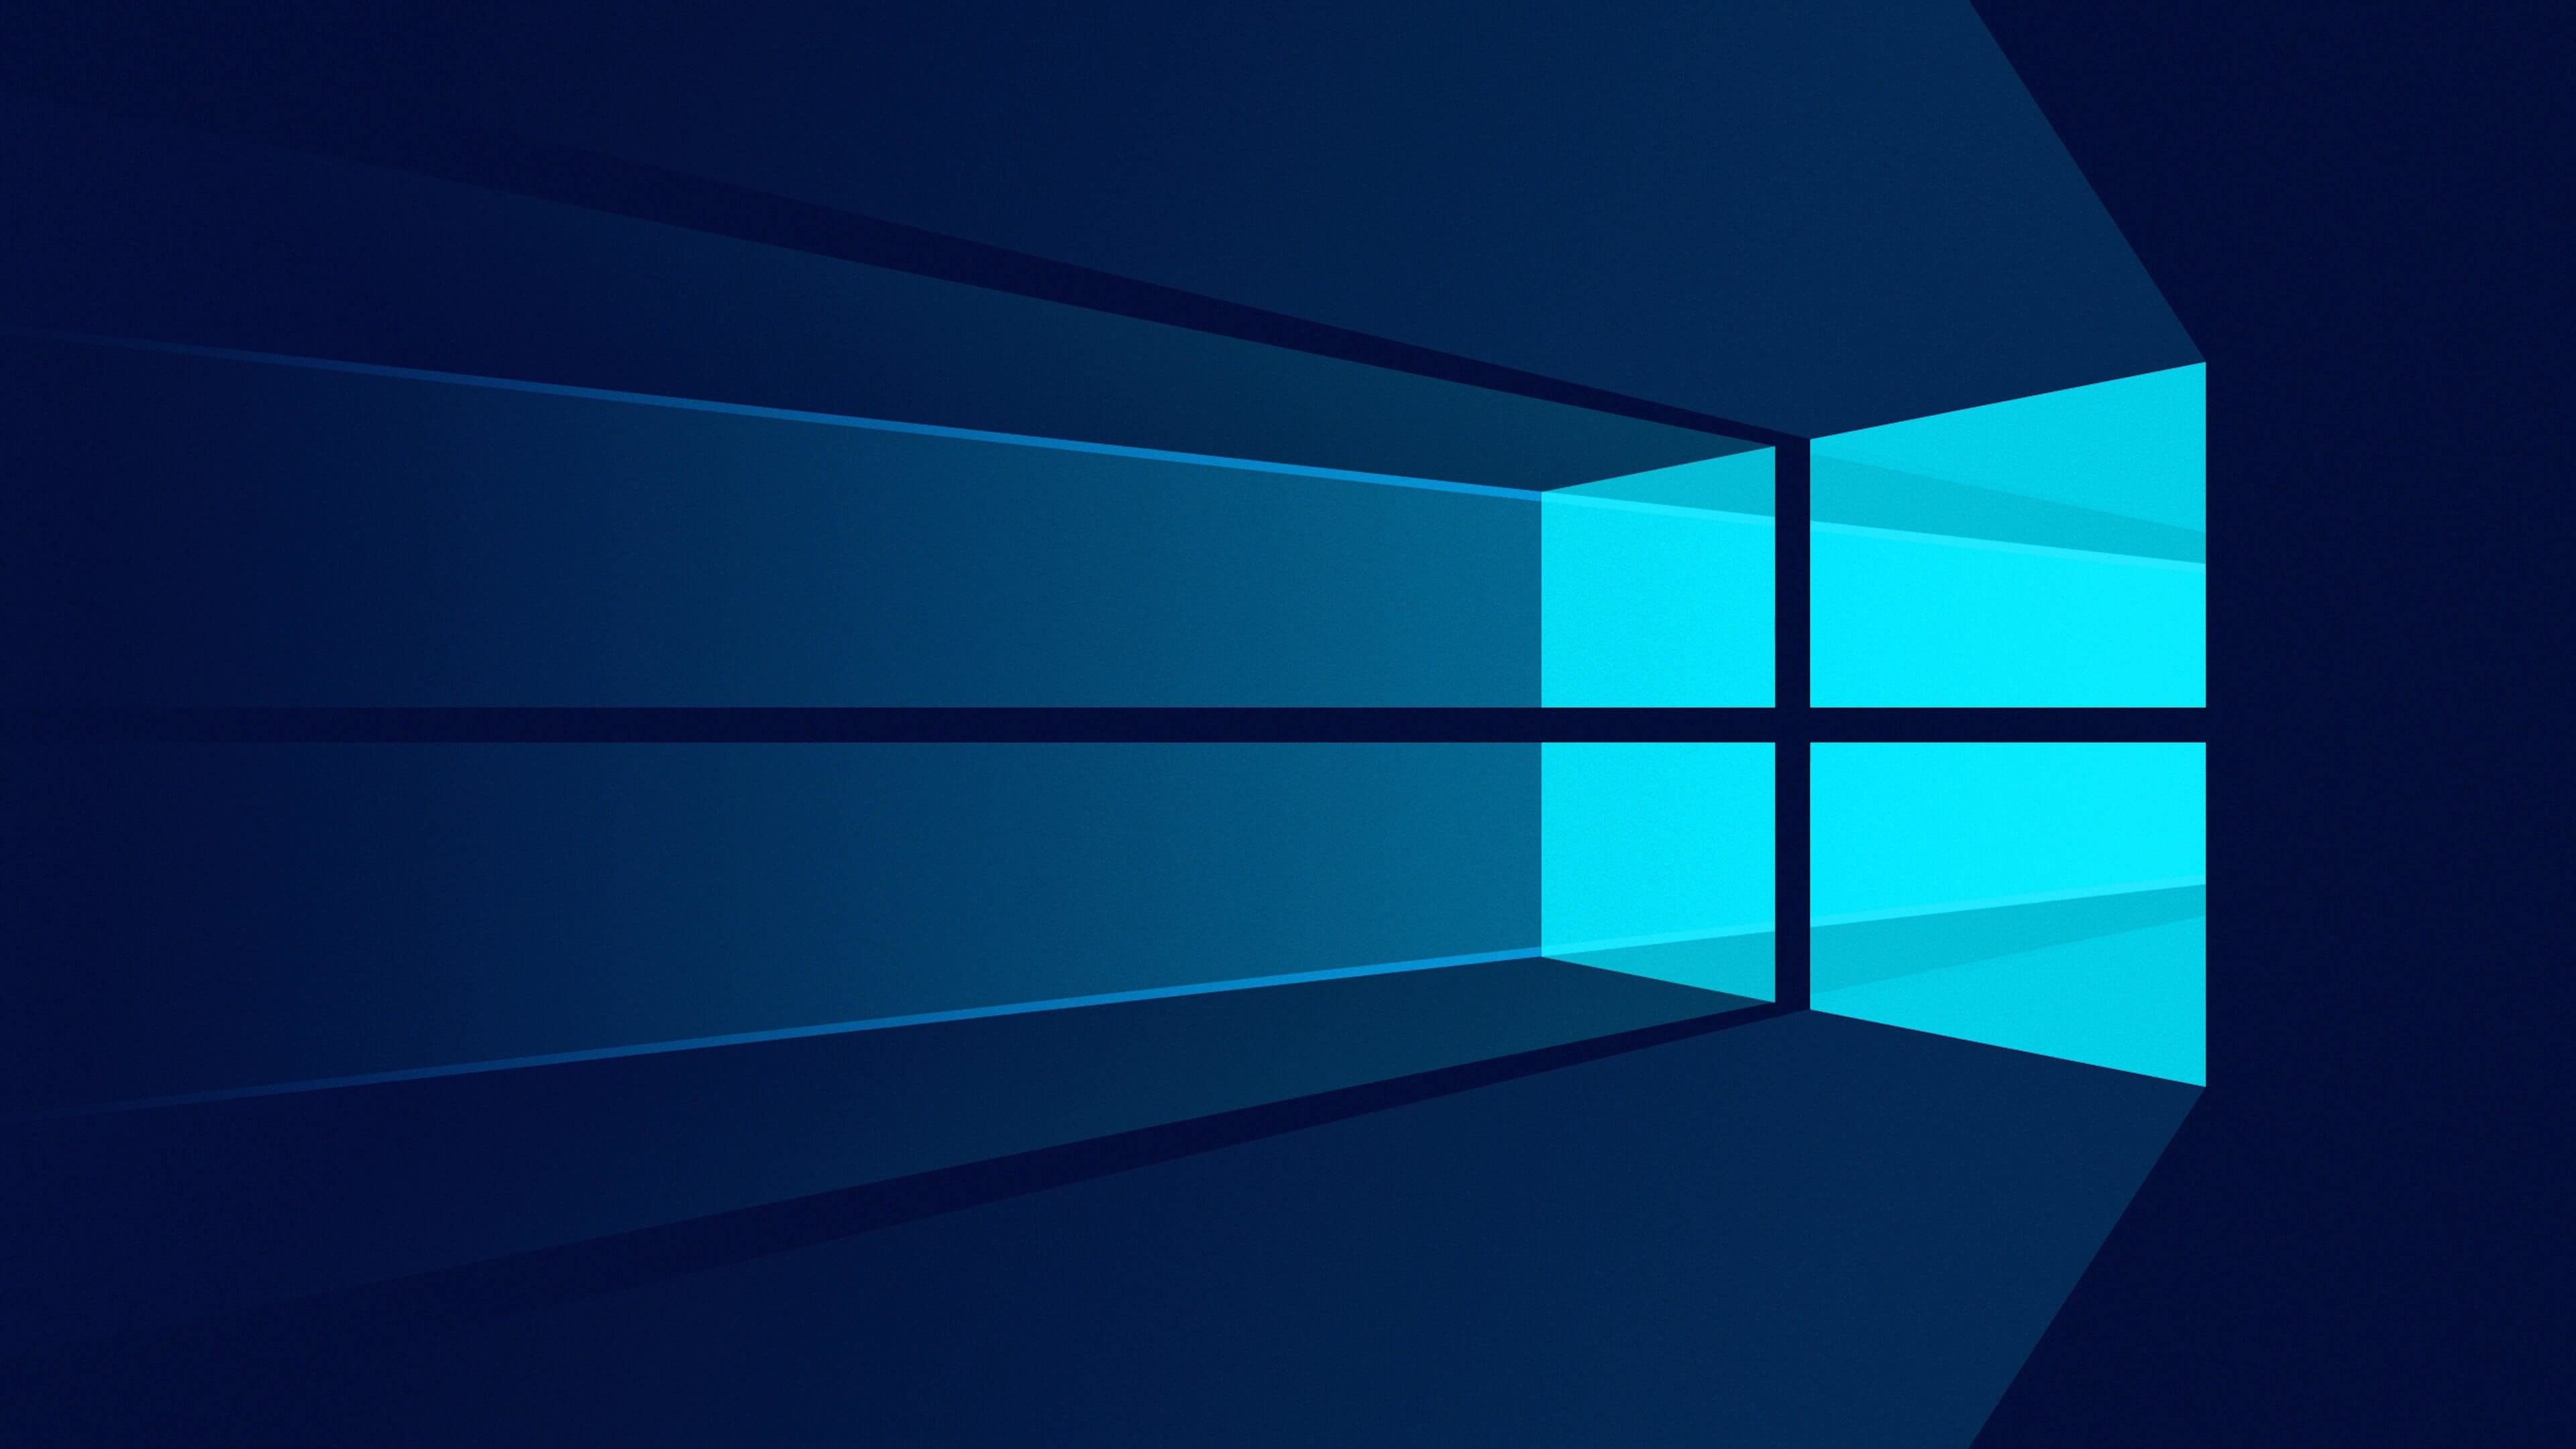 Windows 10 Flat Wallpaper for Desktop 4K 3840x2160